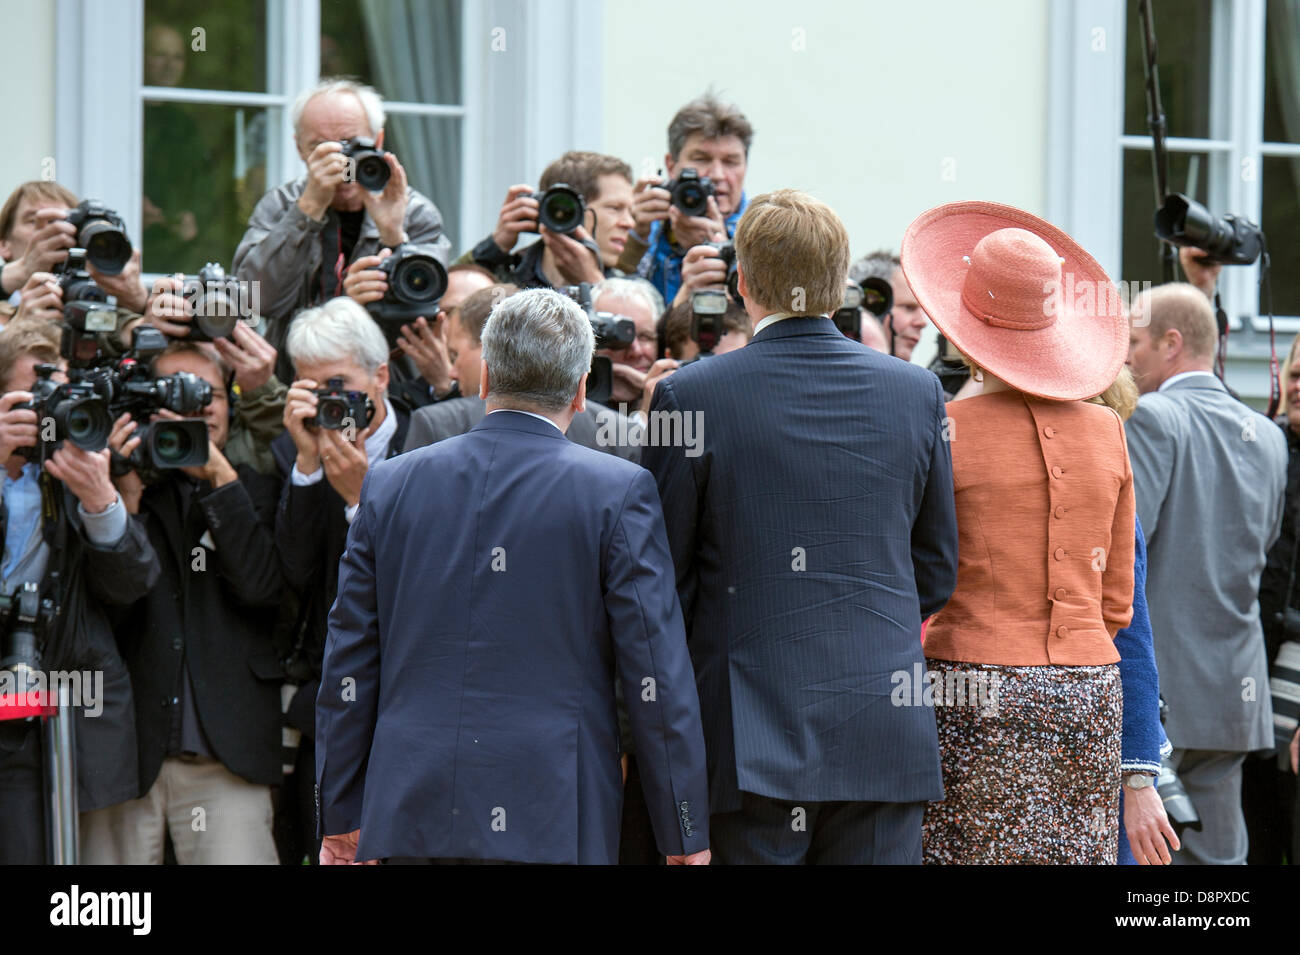 Berlin, Germany. June 3rd 2013. Welcome Their Majesties King Willem-Alexander and Queen Maxima of the Netherlands Stock Photo